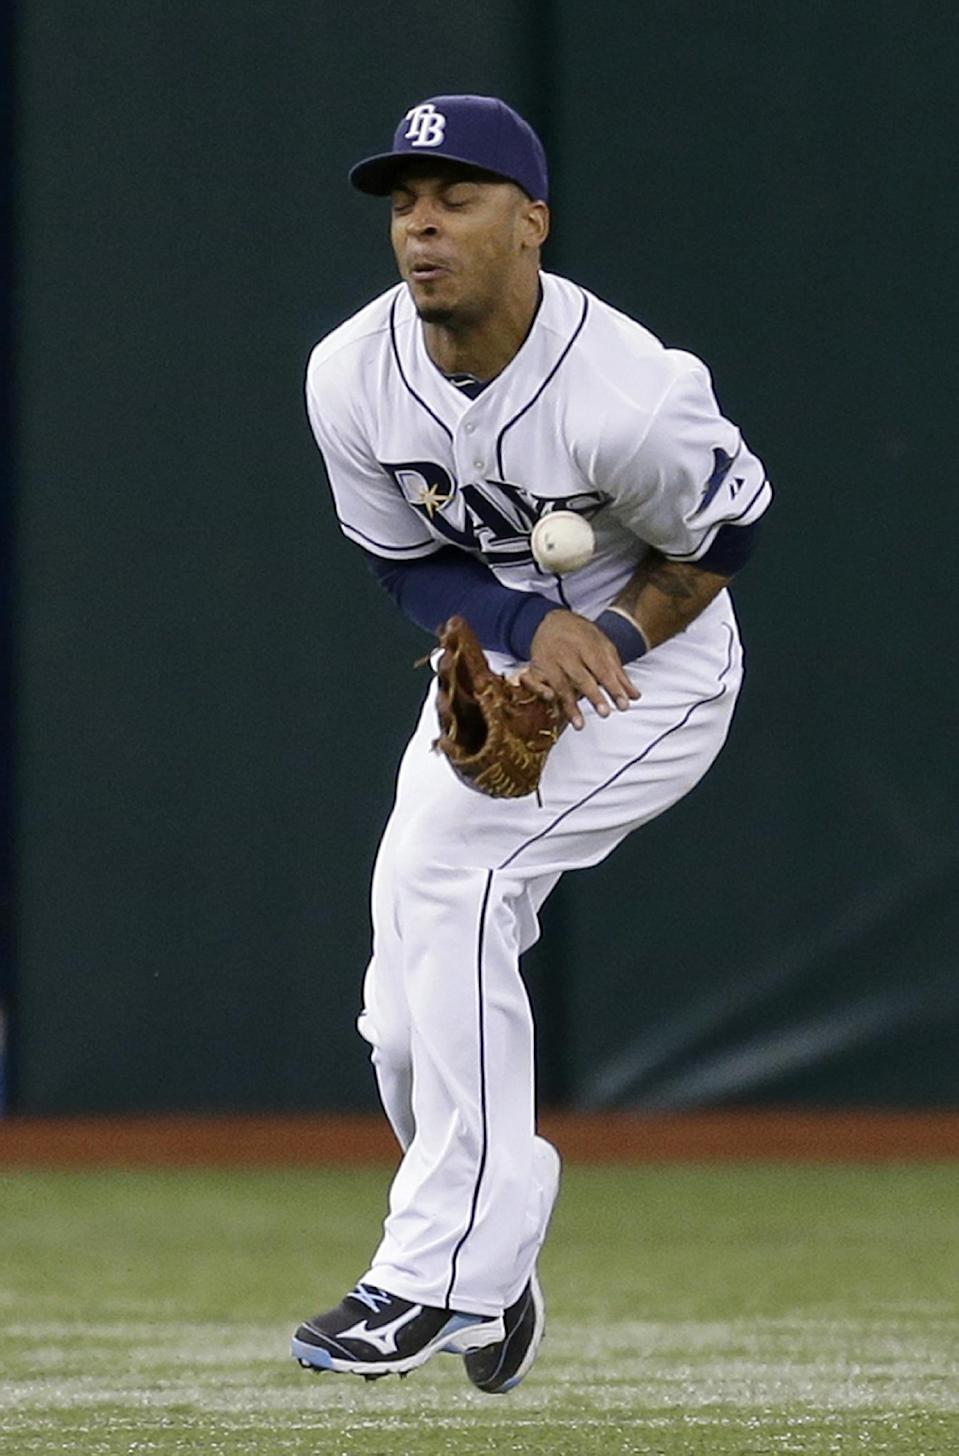 Tampa Bay Rays center fielder Desmond Jennings fields a seventh-inning single by Los Angeles Angels' Chris Nelson during a baseball game Tuesday, Aug. 27, 2013, in St. Petersburg, Fla. (AP Photo/Chris O'Meara)